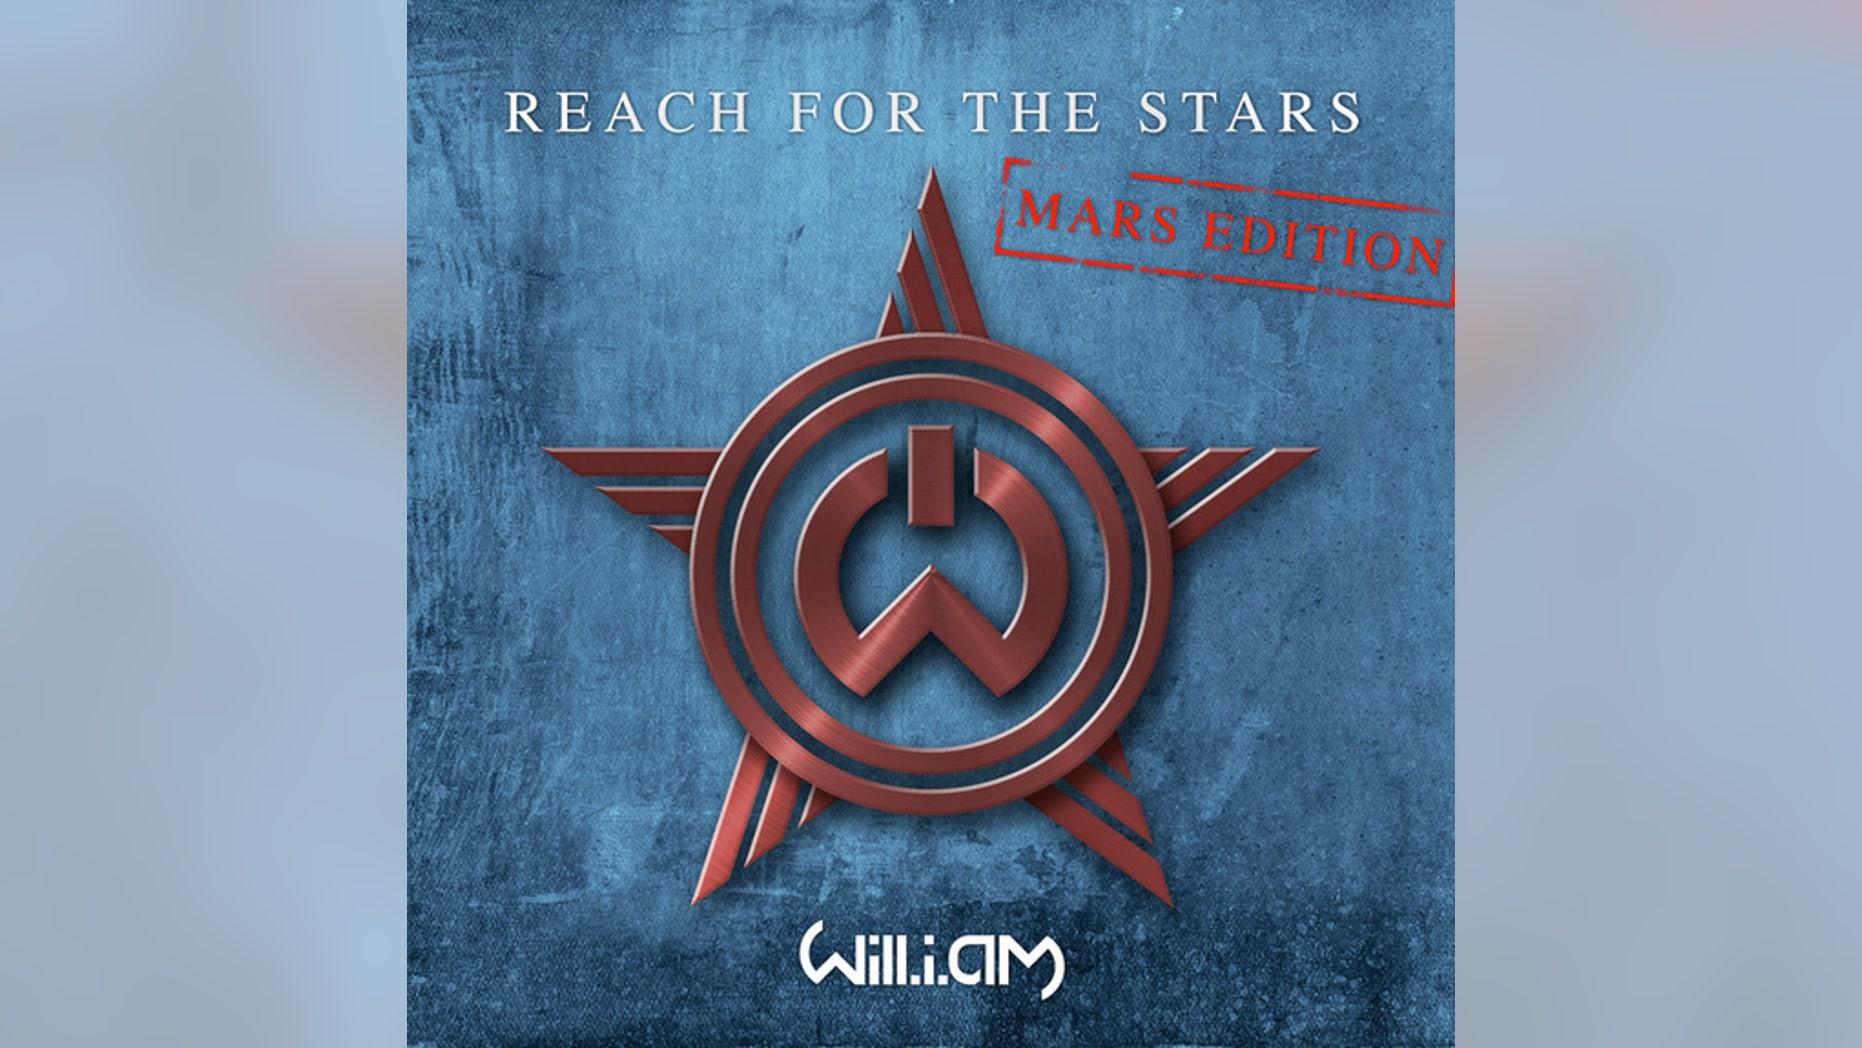 """""""Mars Edition"""" album art for will.i.am's new single """"Reach for the Stars,"""" as radioed from the Red Planet."""